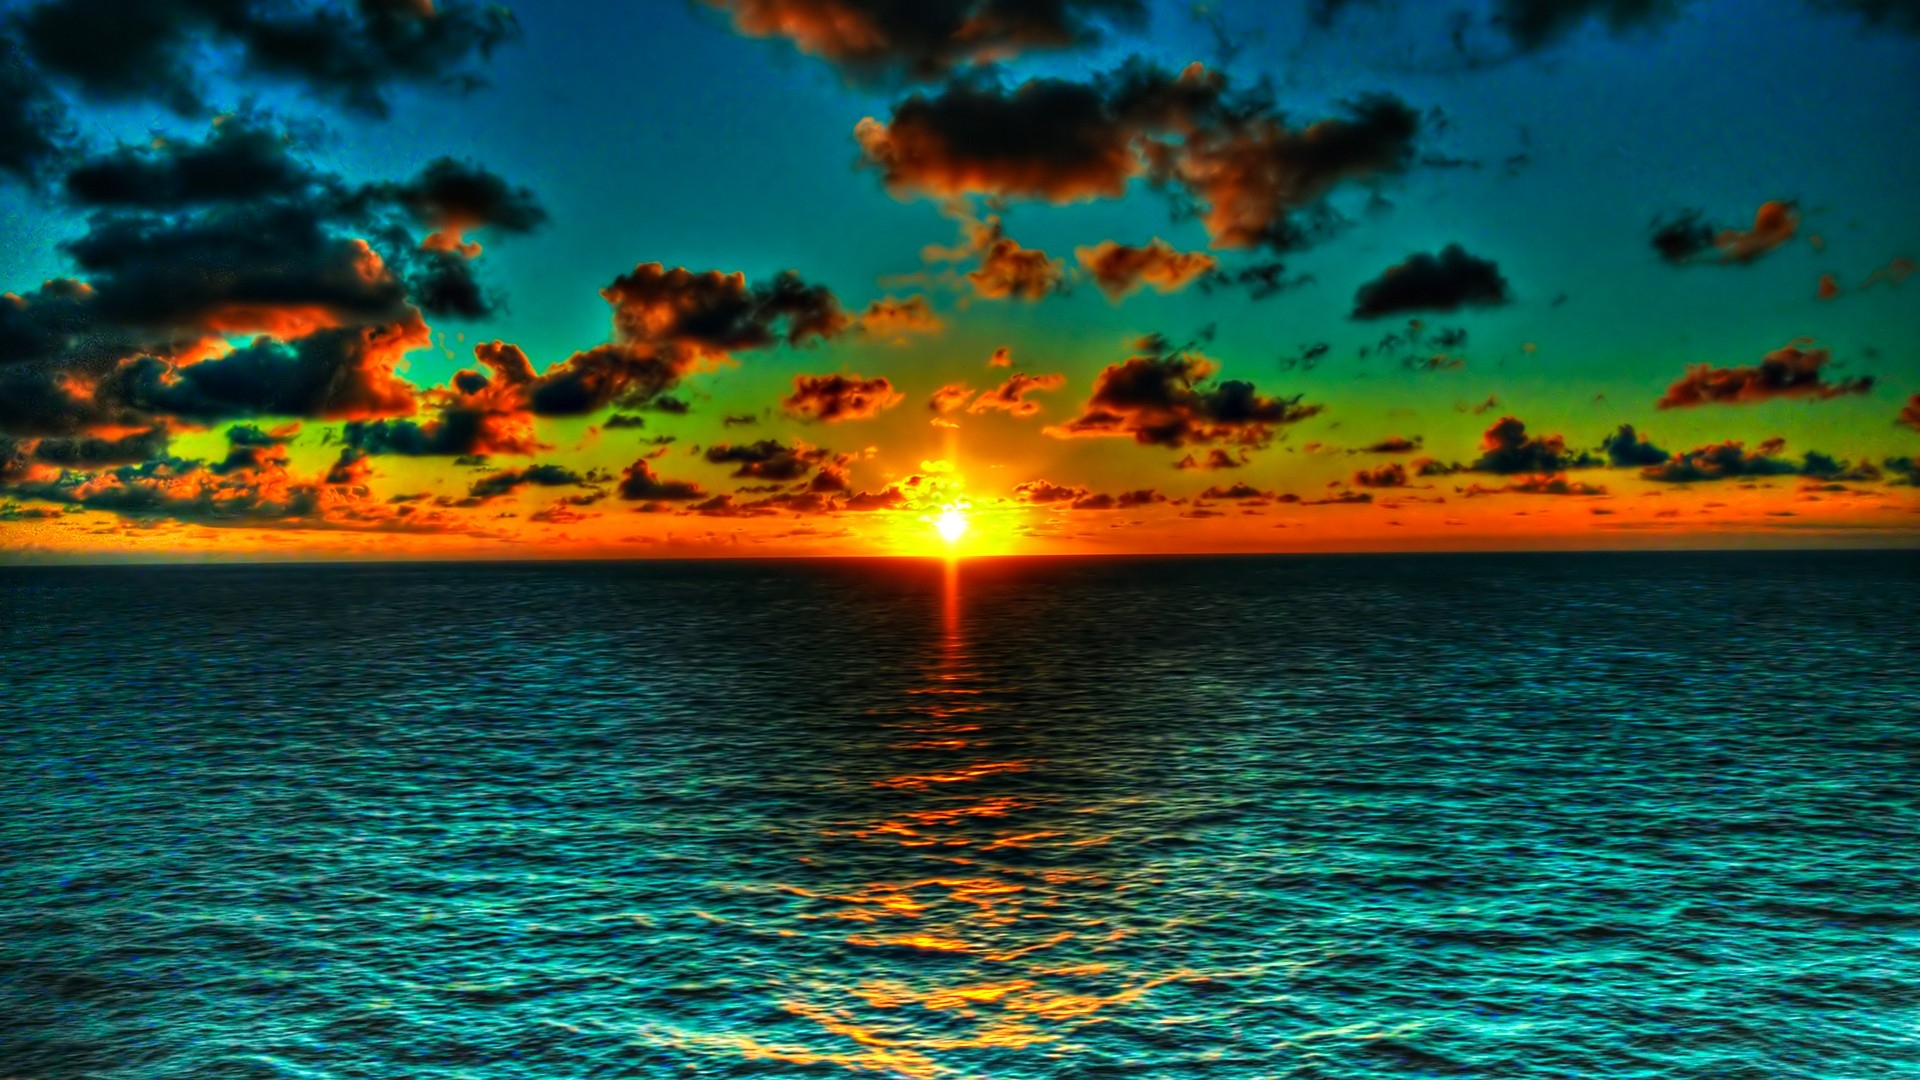 Download wallpaper 1920x1080 sun clouds horizon sea water get the latest sun clouds horizon news pictures and videos and learn all about sun clouds horizon from wallpapers4u your wallpaper news source thecheapjerseys Choice Image